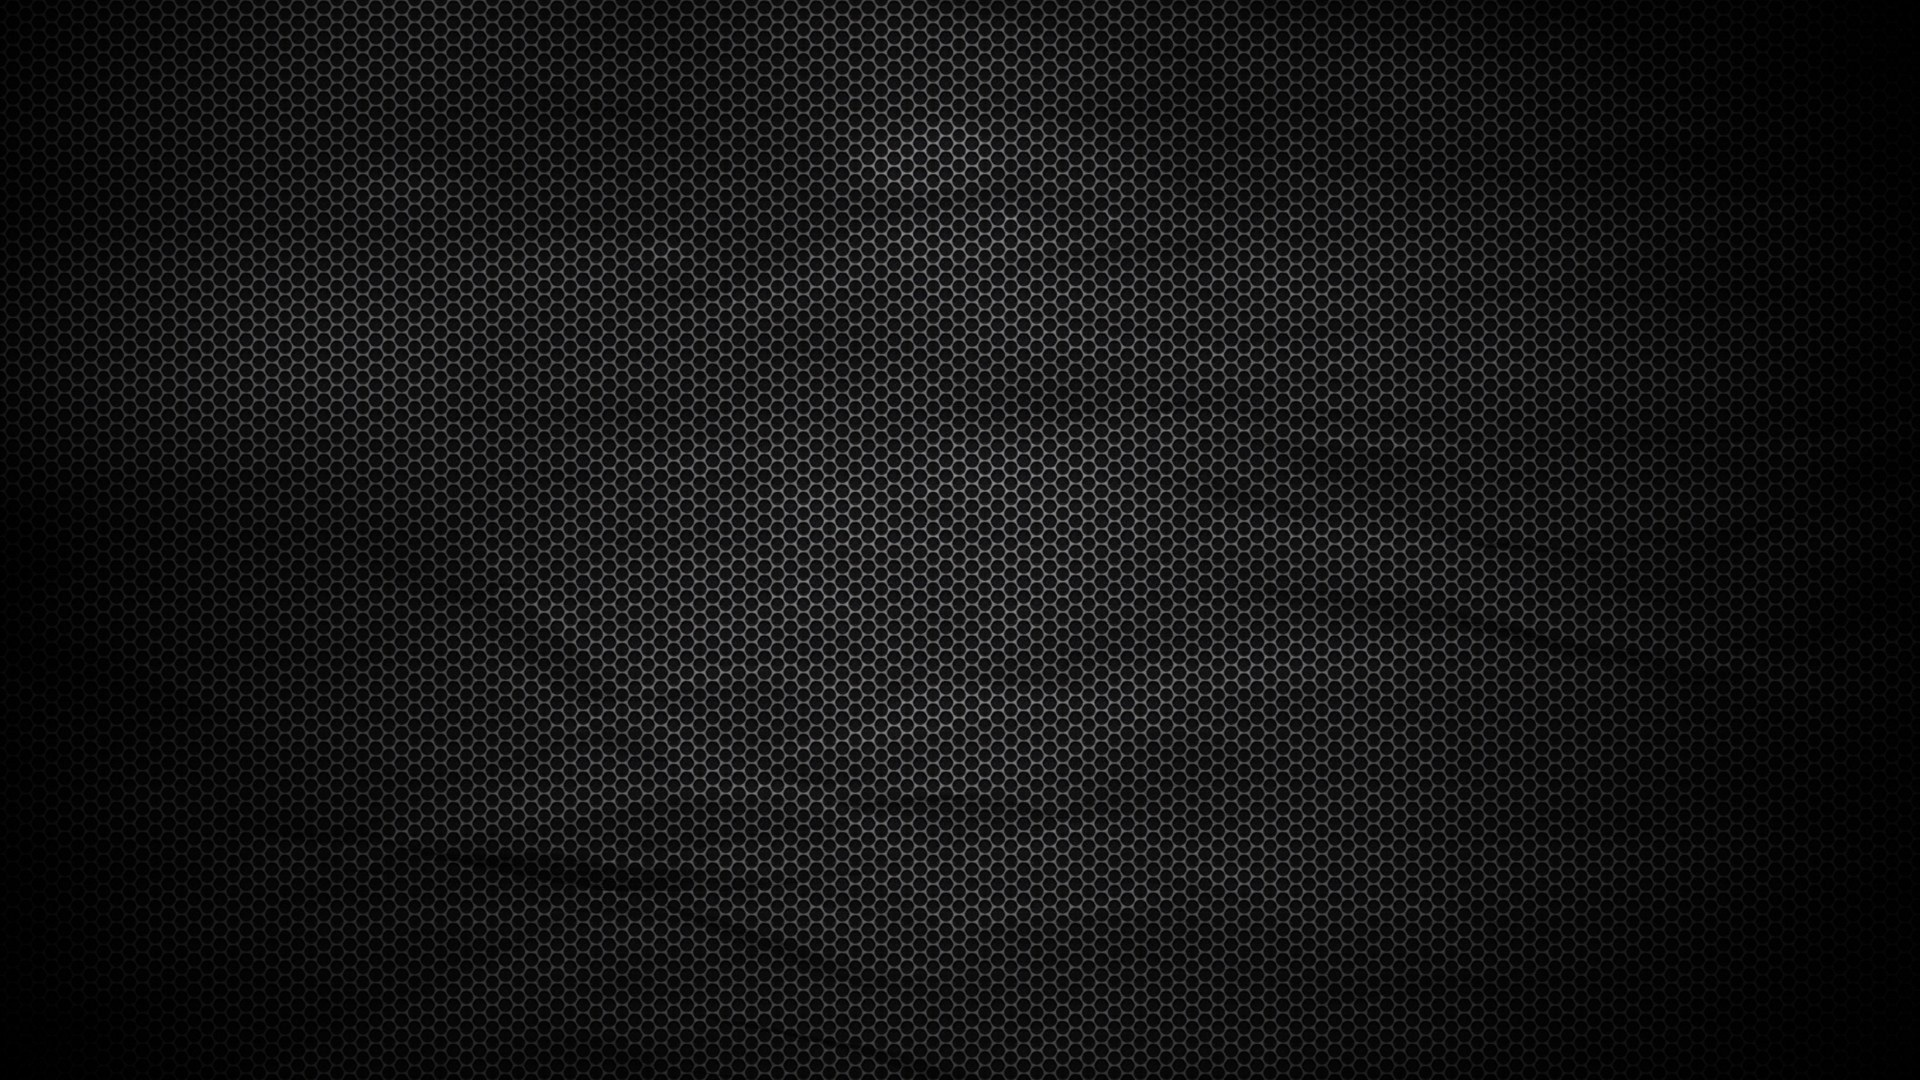 Wallpapers-HD-1080P-Black-85+-background-pictures-.jpg